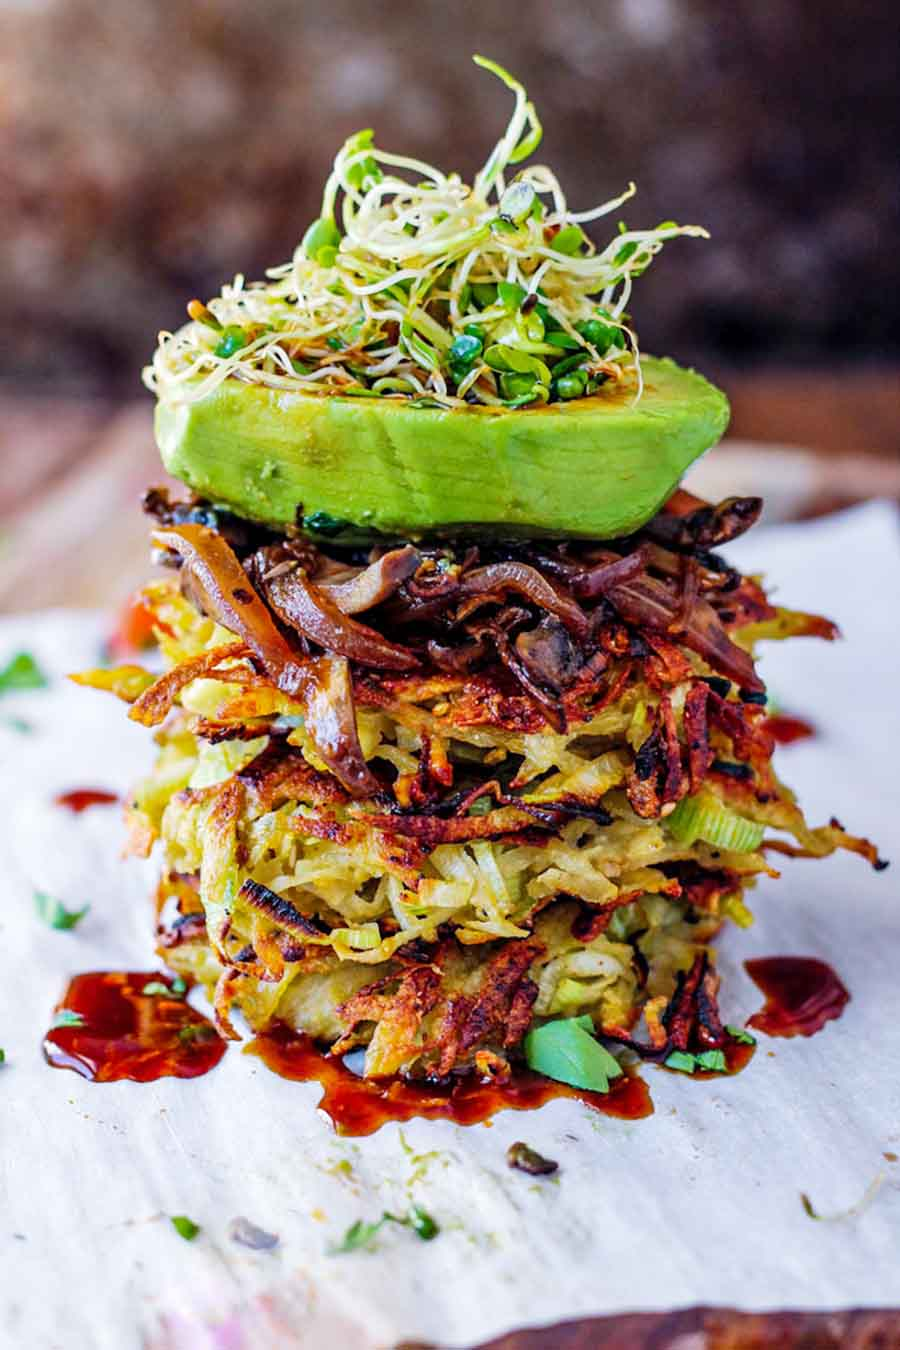 Potato & leek pancakes stacked on top of each other and topped with avocado and sprouts